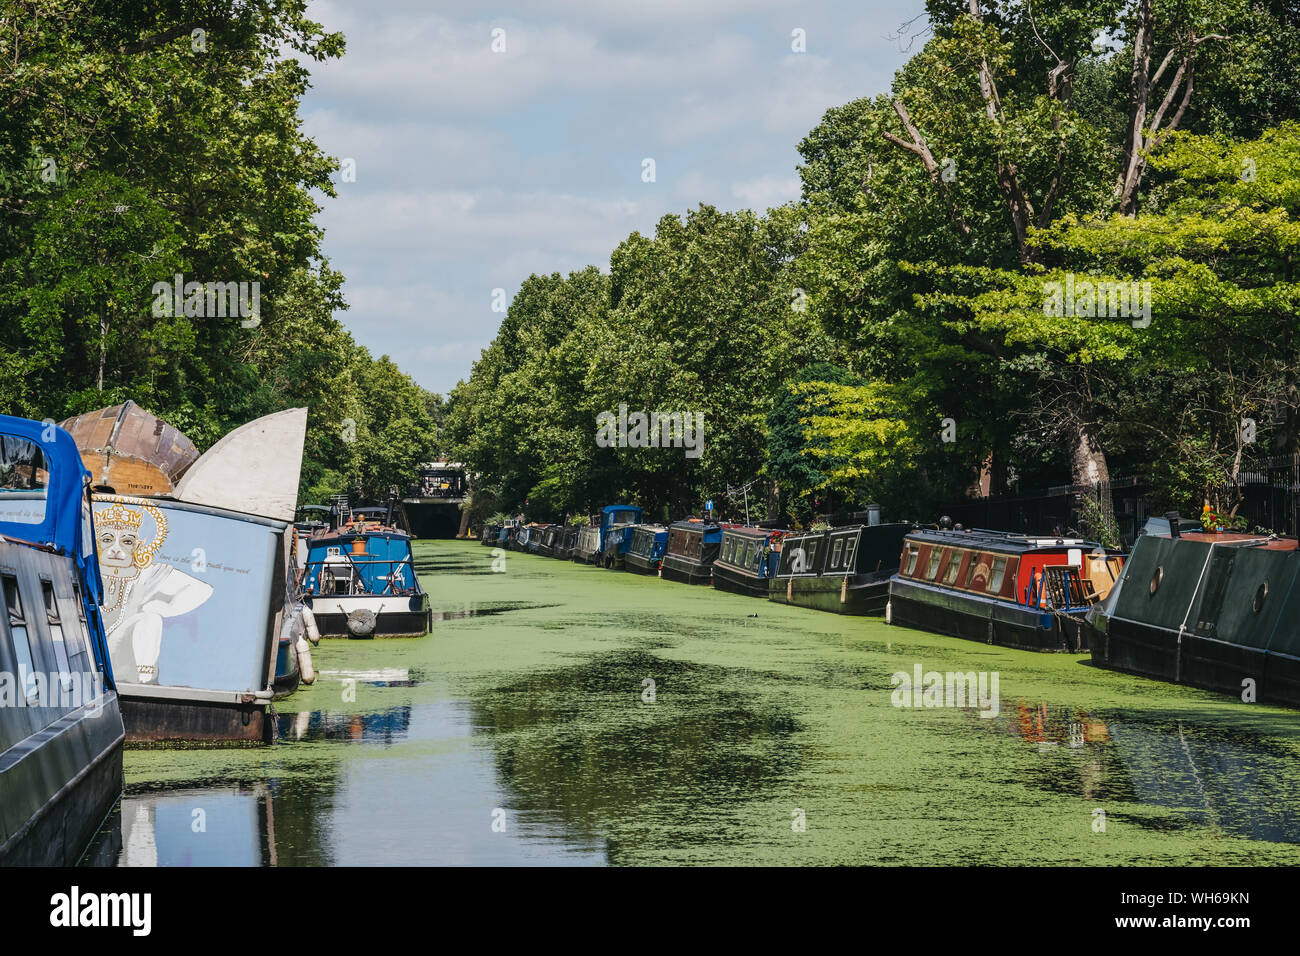 London, UK - July 18, 2019: View of the houseboats moored on both sides of Regents Canal in Little Venice, London, a tranquil area of the city where t Stock Photo